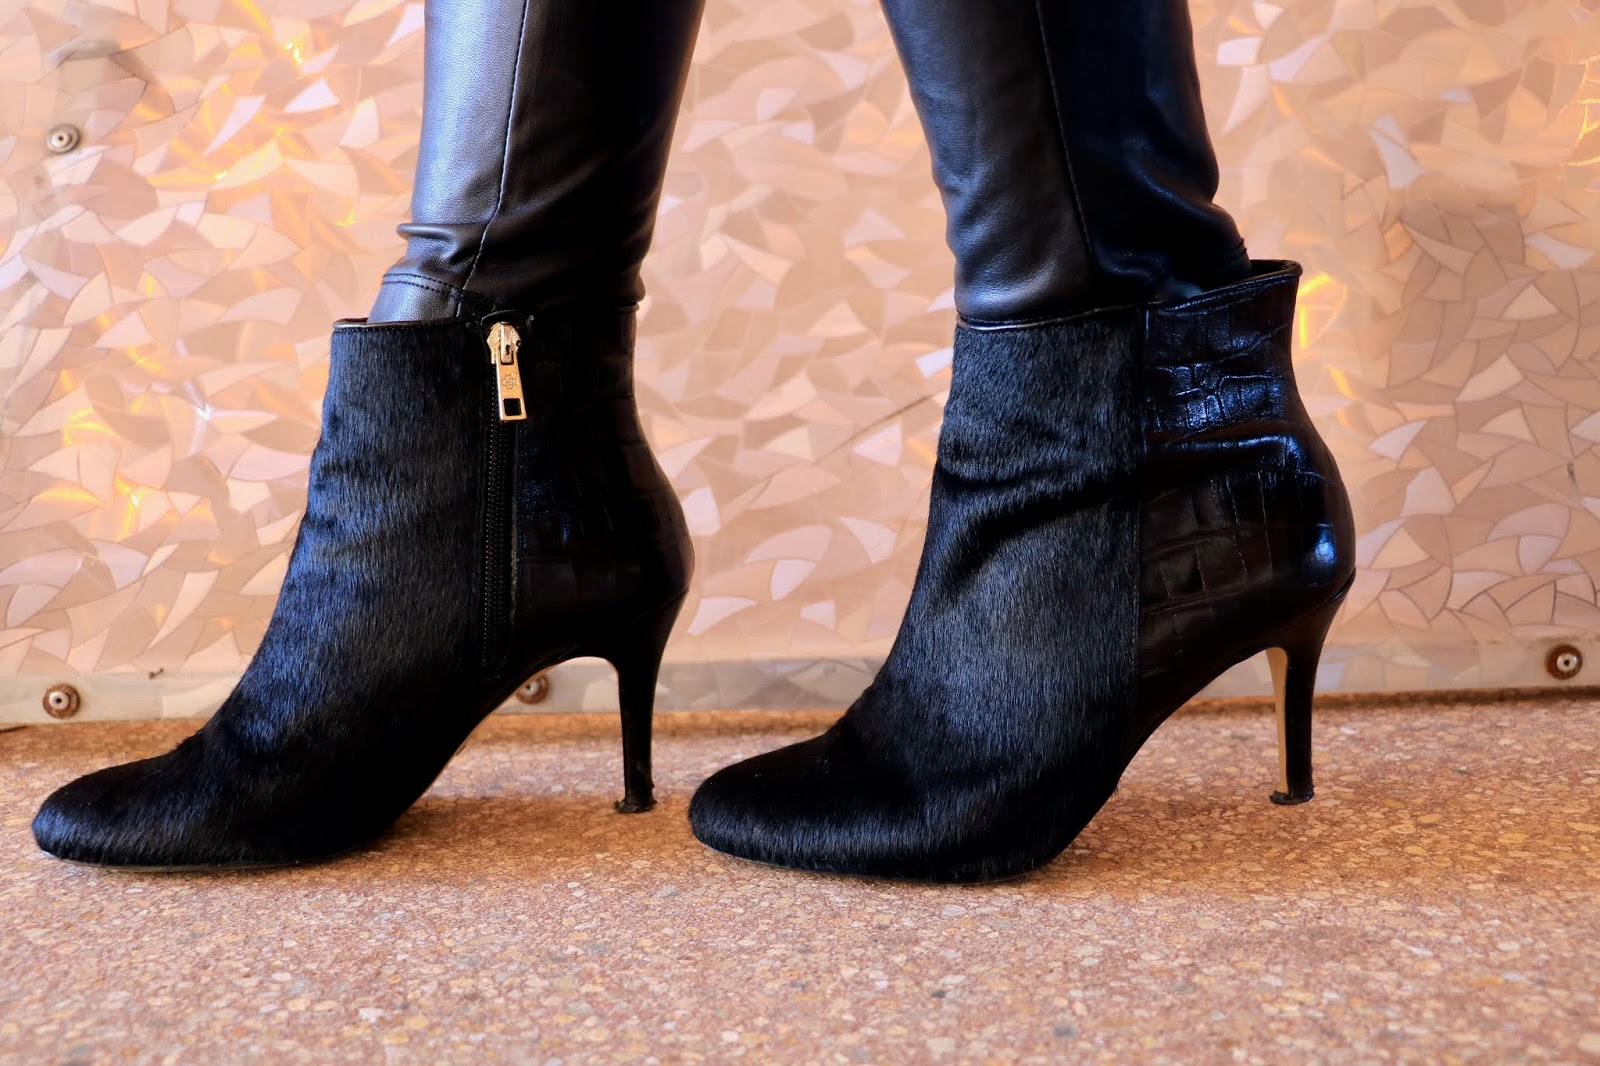 Nyc fashion blogger Kathleen Harper wearing black calf hair booties from Ann Taylor.